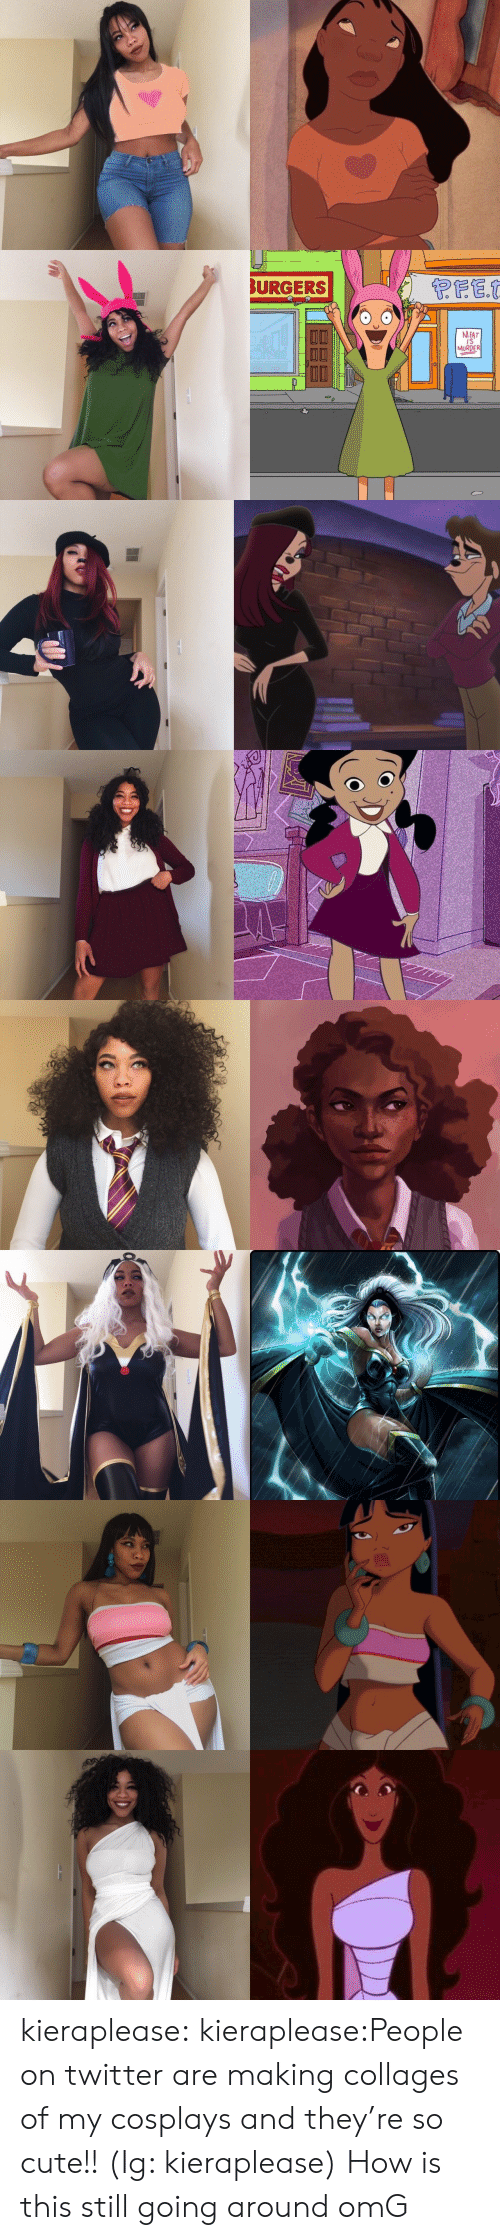 Cute, Instagram, and Omg: BURGERS  MEAT  IS  MURDER kieraplease:  kieraplease:People on twitter are making collages of my cosplays and they're so cute!! (Ig: kieraplease)  How is this still going around omG